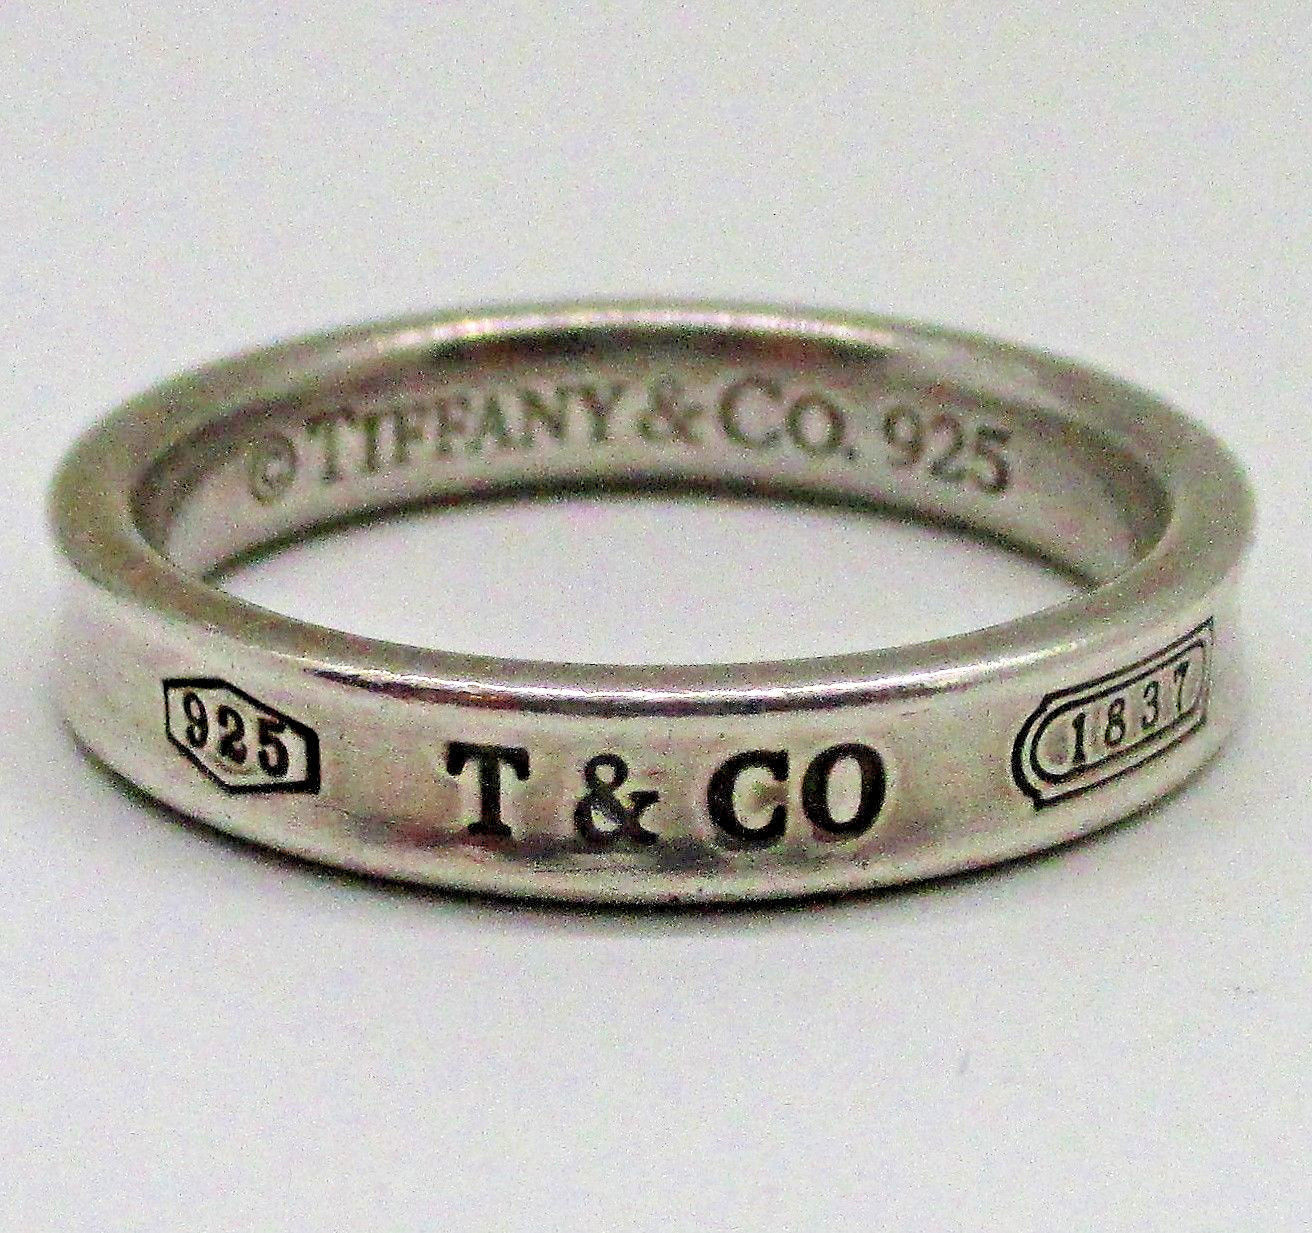 a16651984a1c9 TIFFANY & CO. Vintage Narrow Concave 1837 and 50 similar items